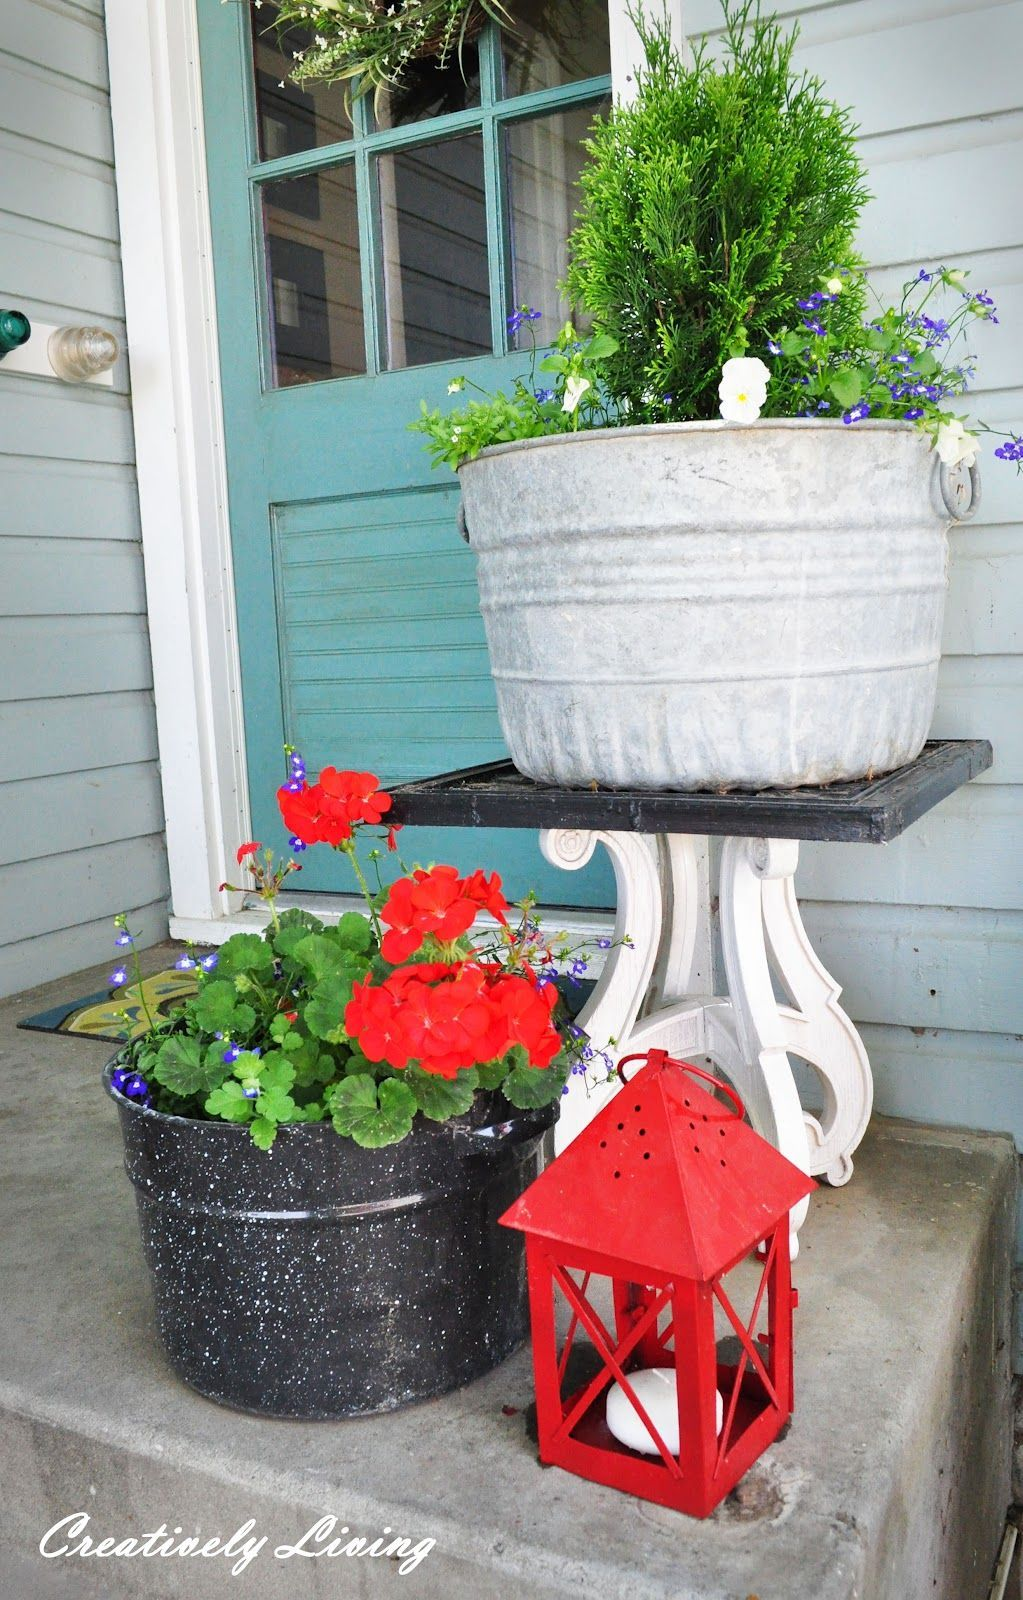 Back Entry Exterior Doors | summer decorating using canning pots as planters with a red lantern for an accent | Bayer Built WoodworksExterior Doors | summer decorating using canning pots as planters with a red lantern for an accent | Bayer Built Woodworks